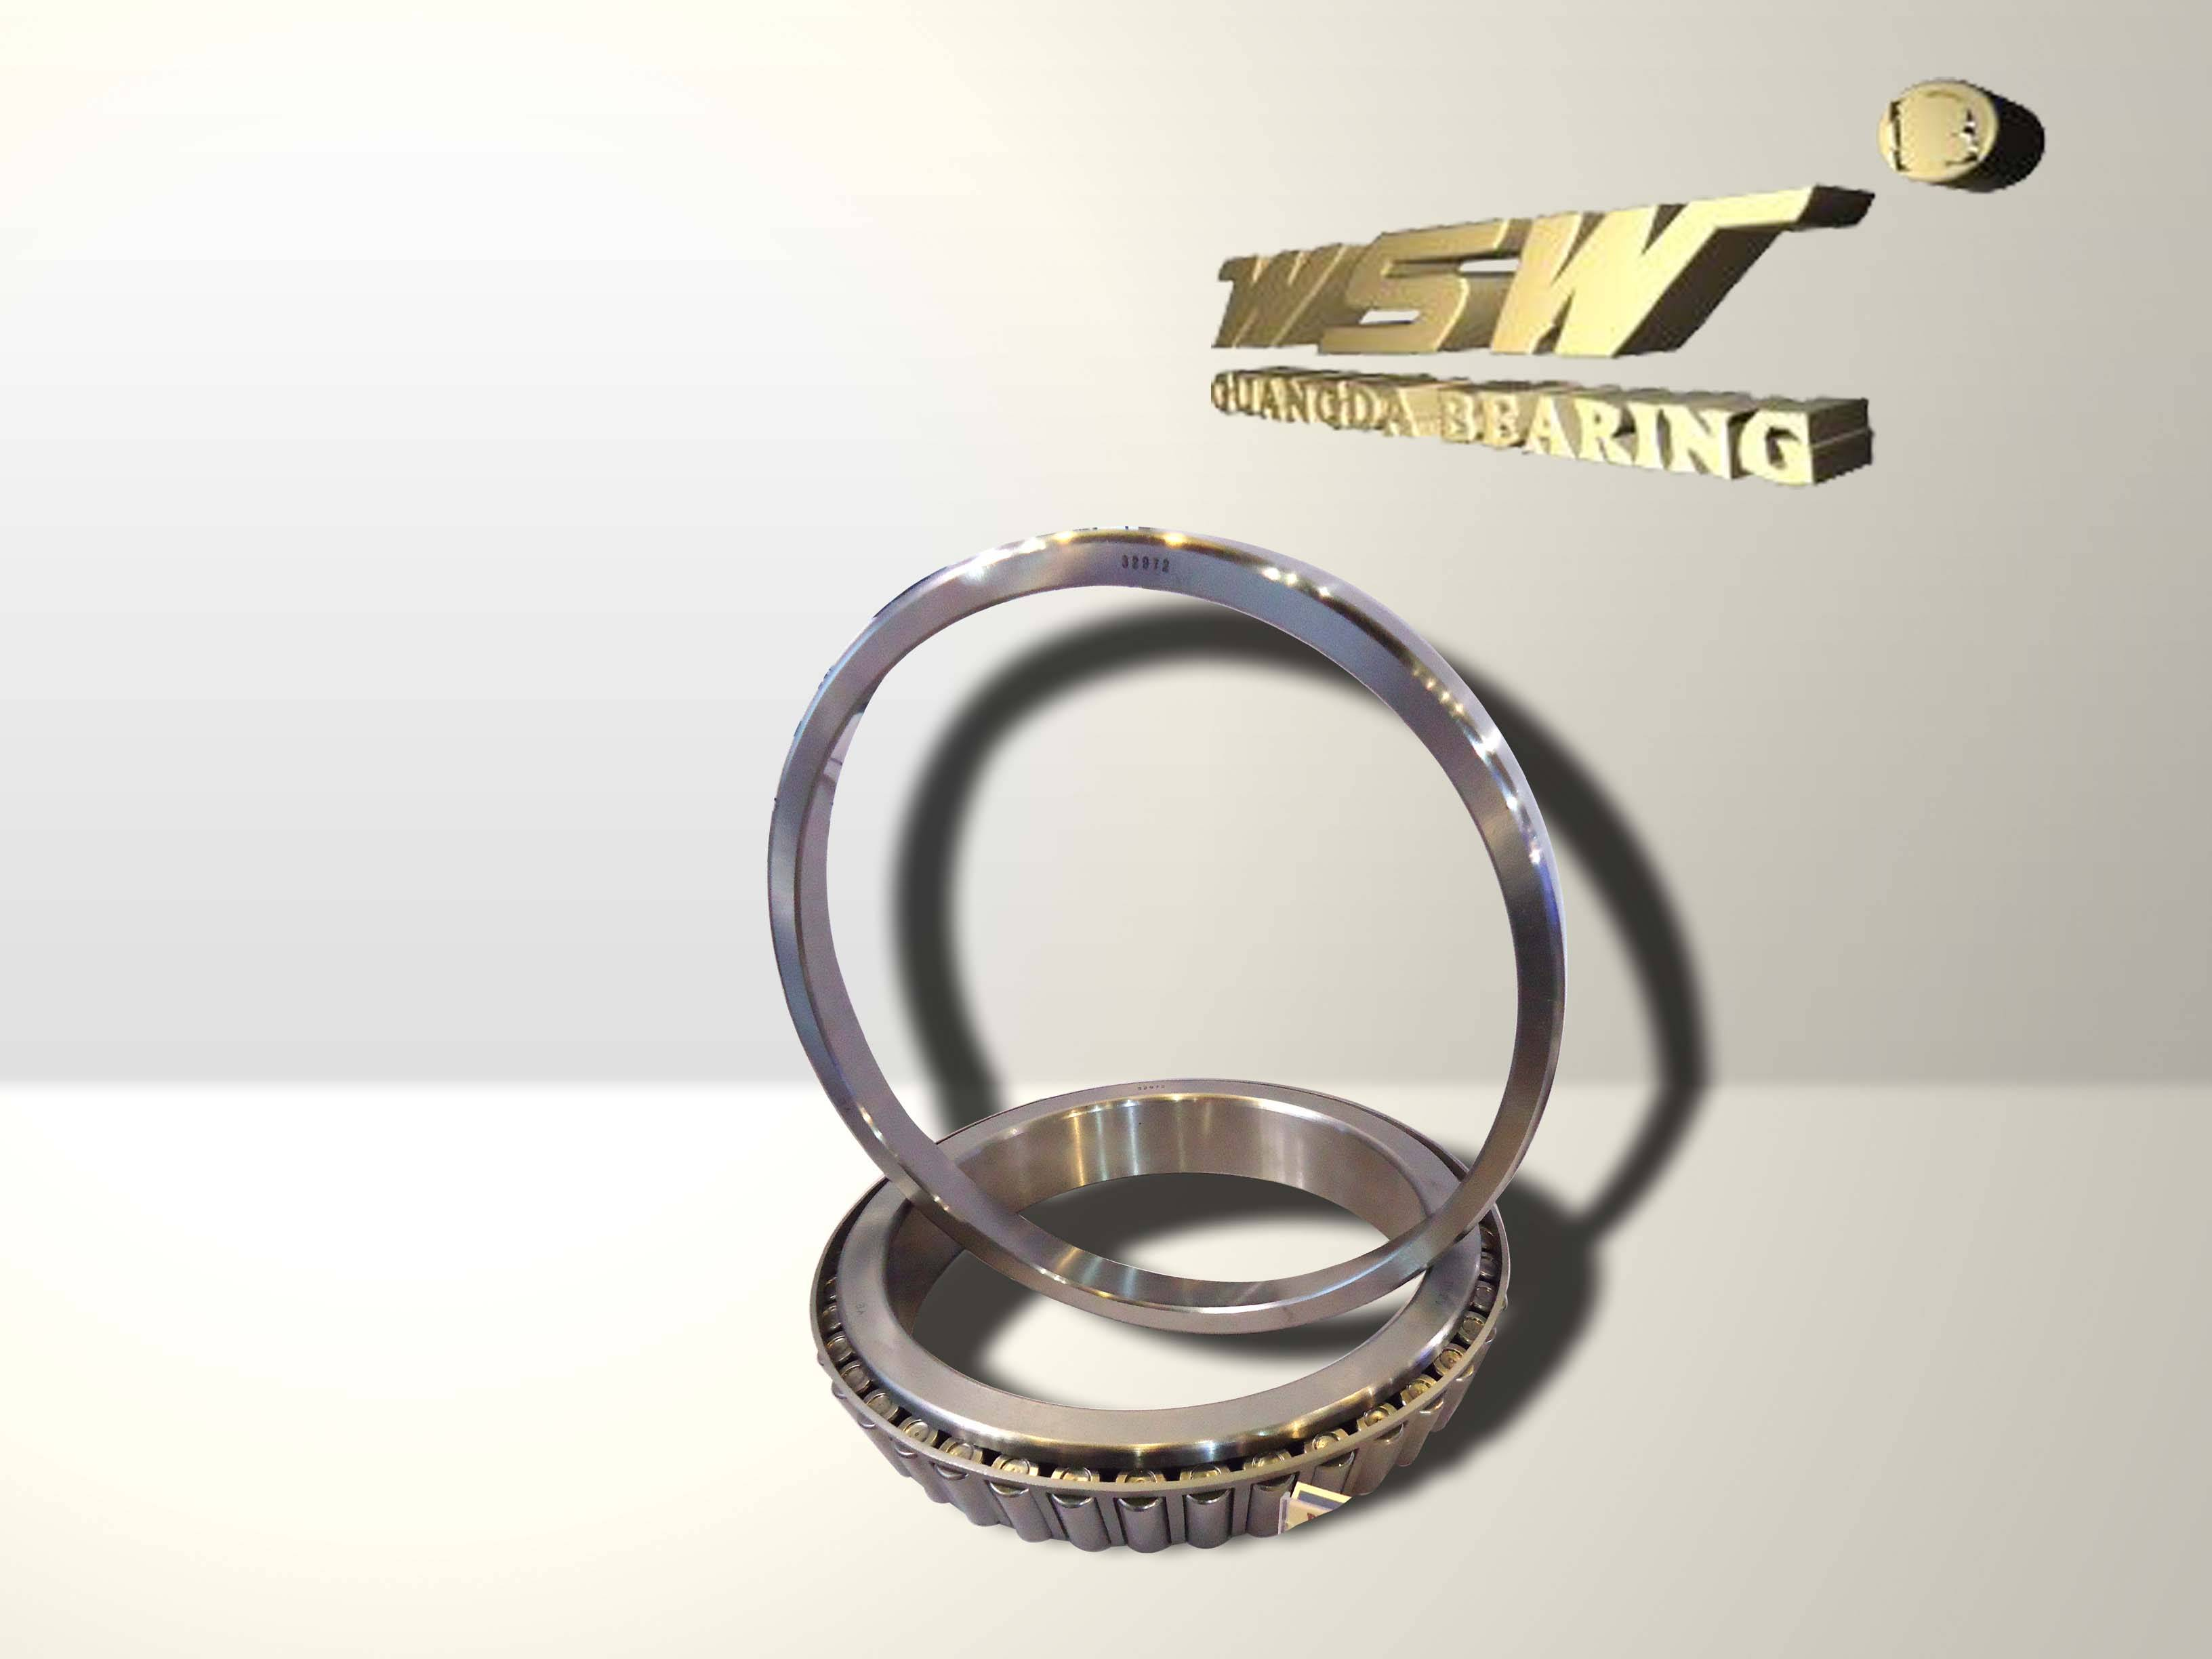 LM844049 / LM844010 bearings, automotive bearings, construction machinery bearings, differential pin